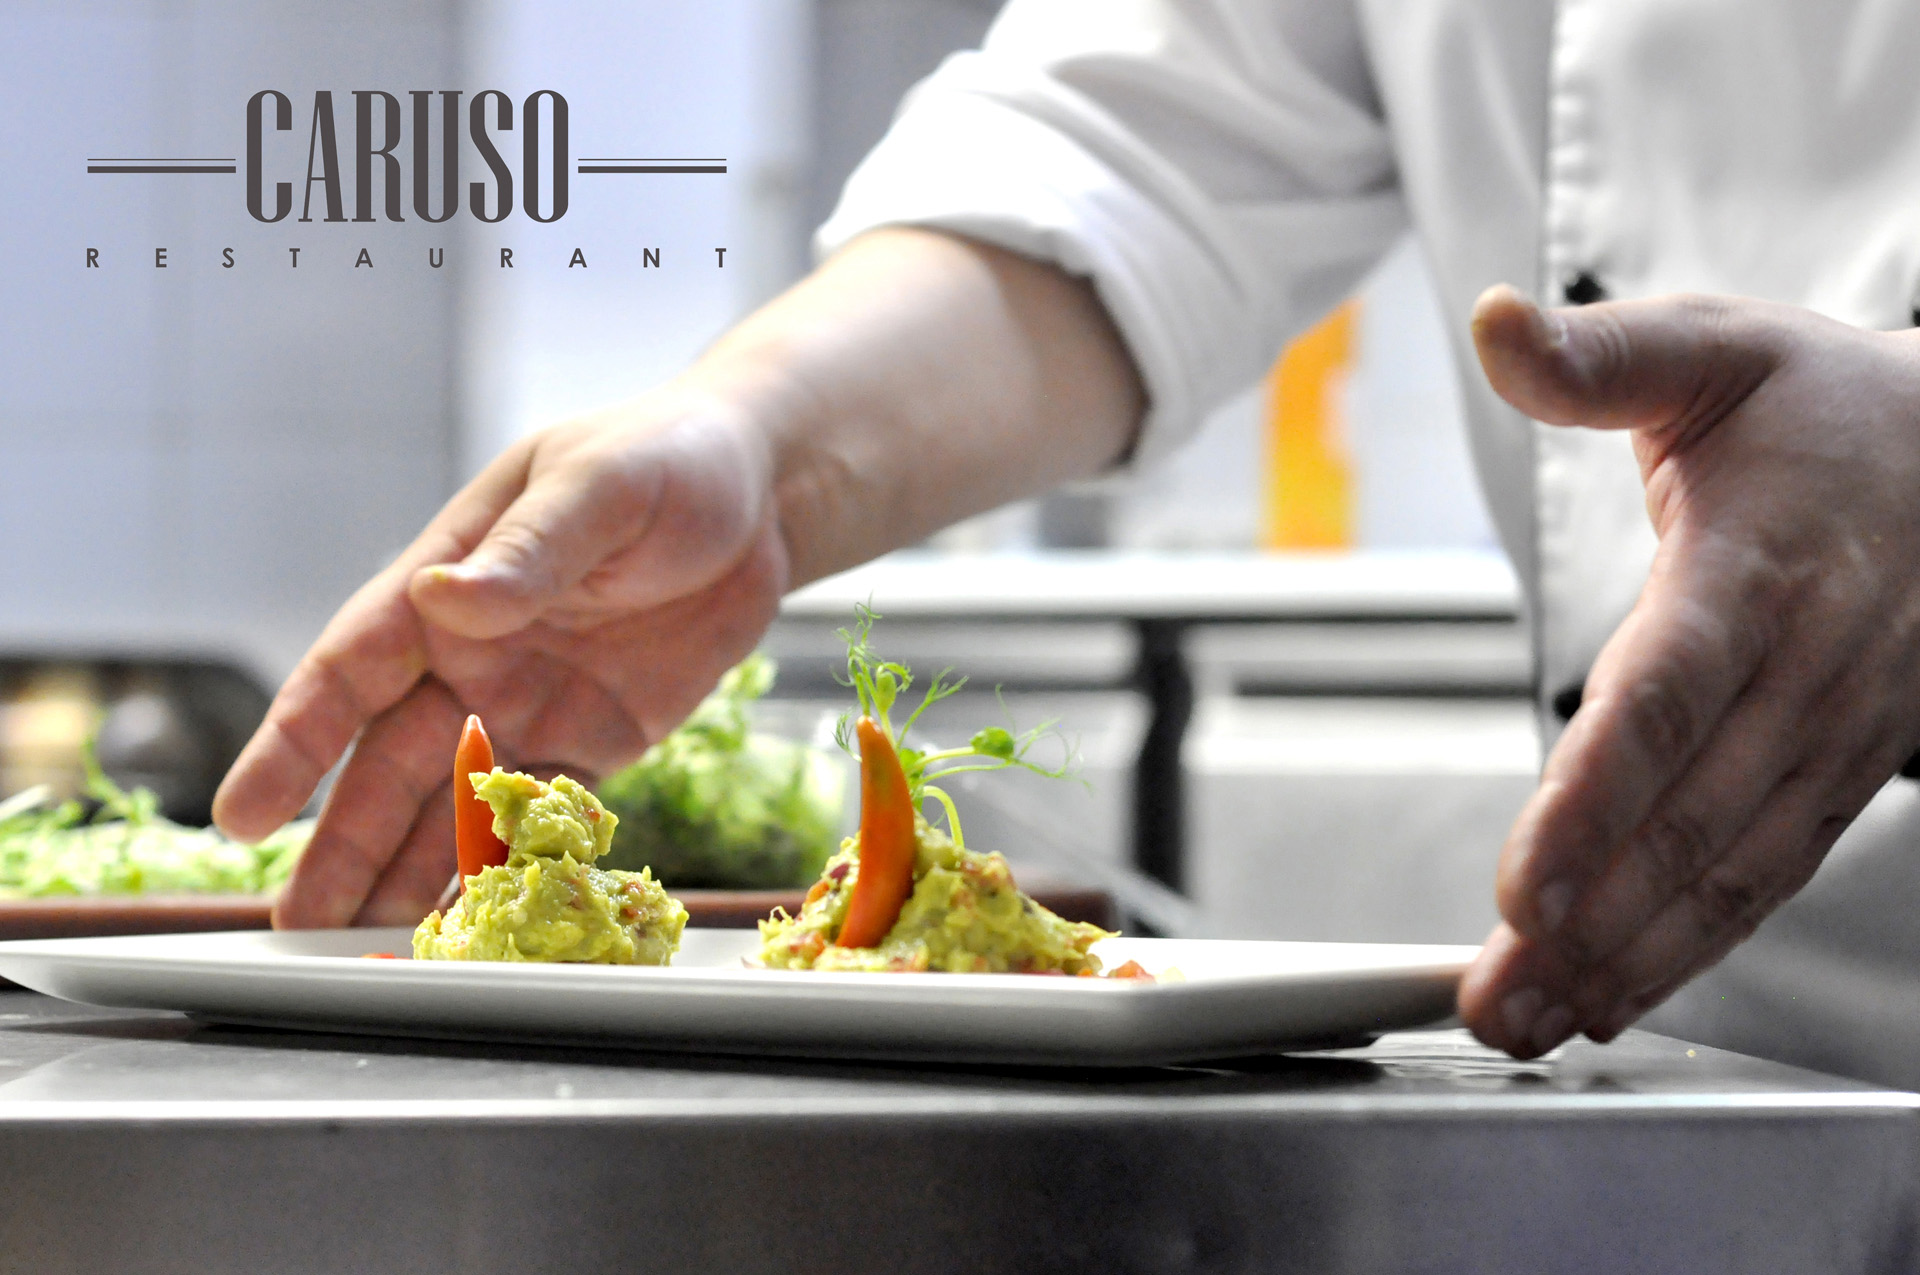 restaurant-caruso-food